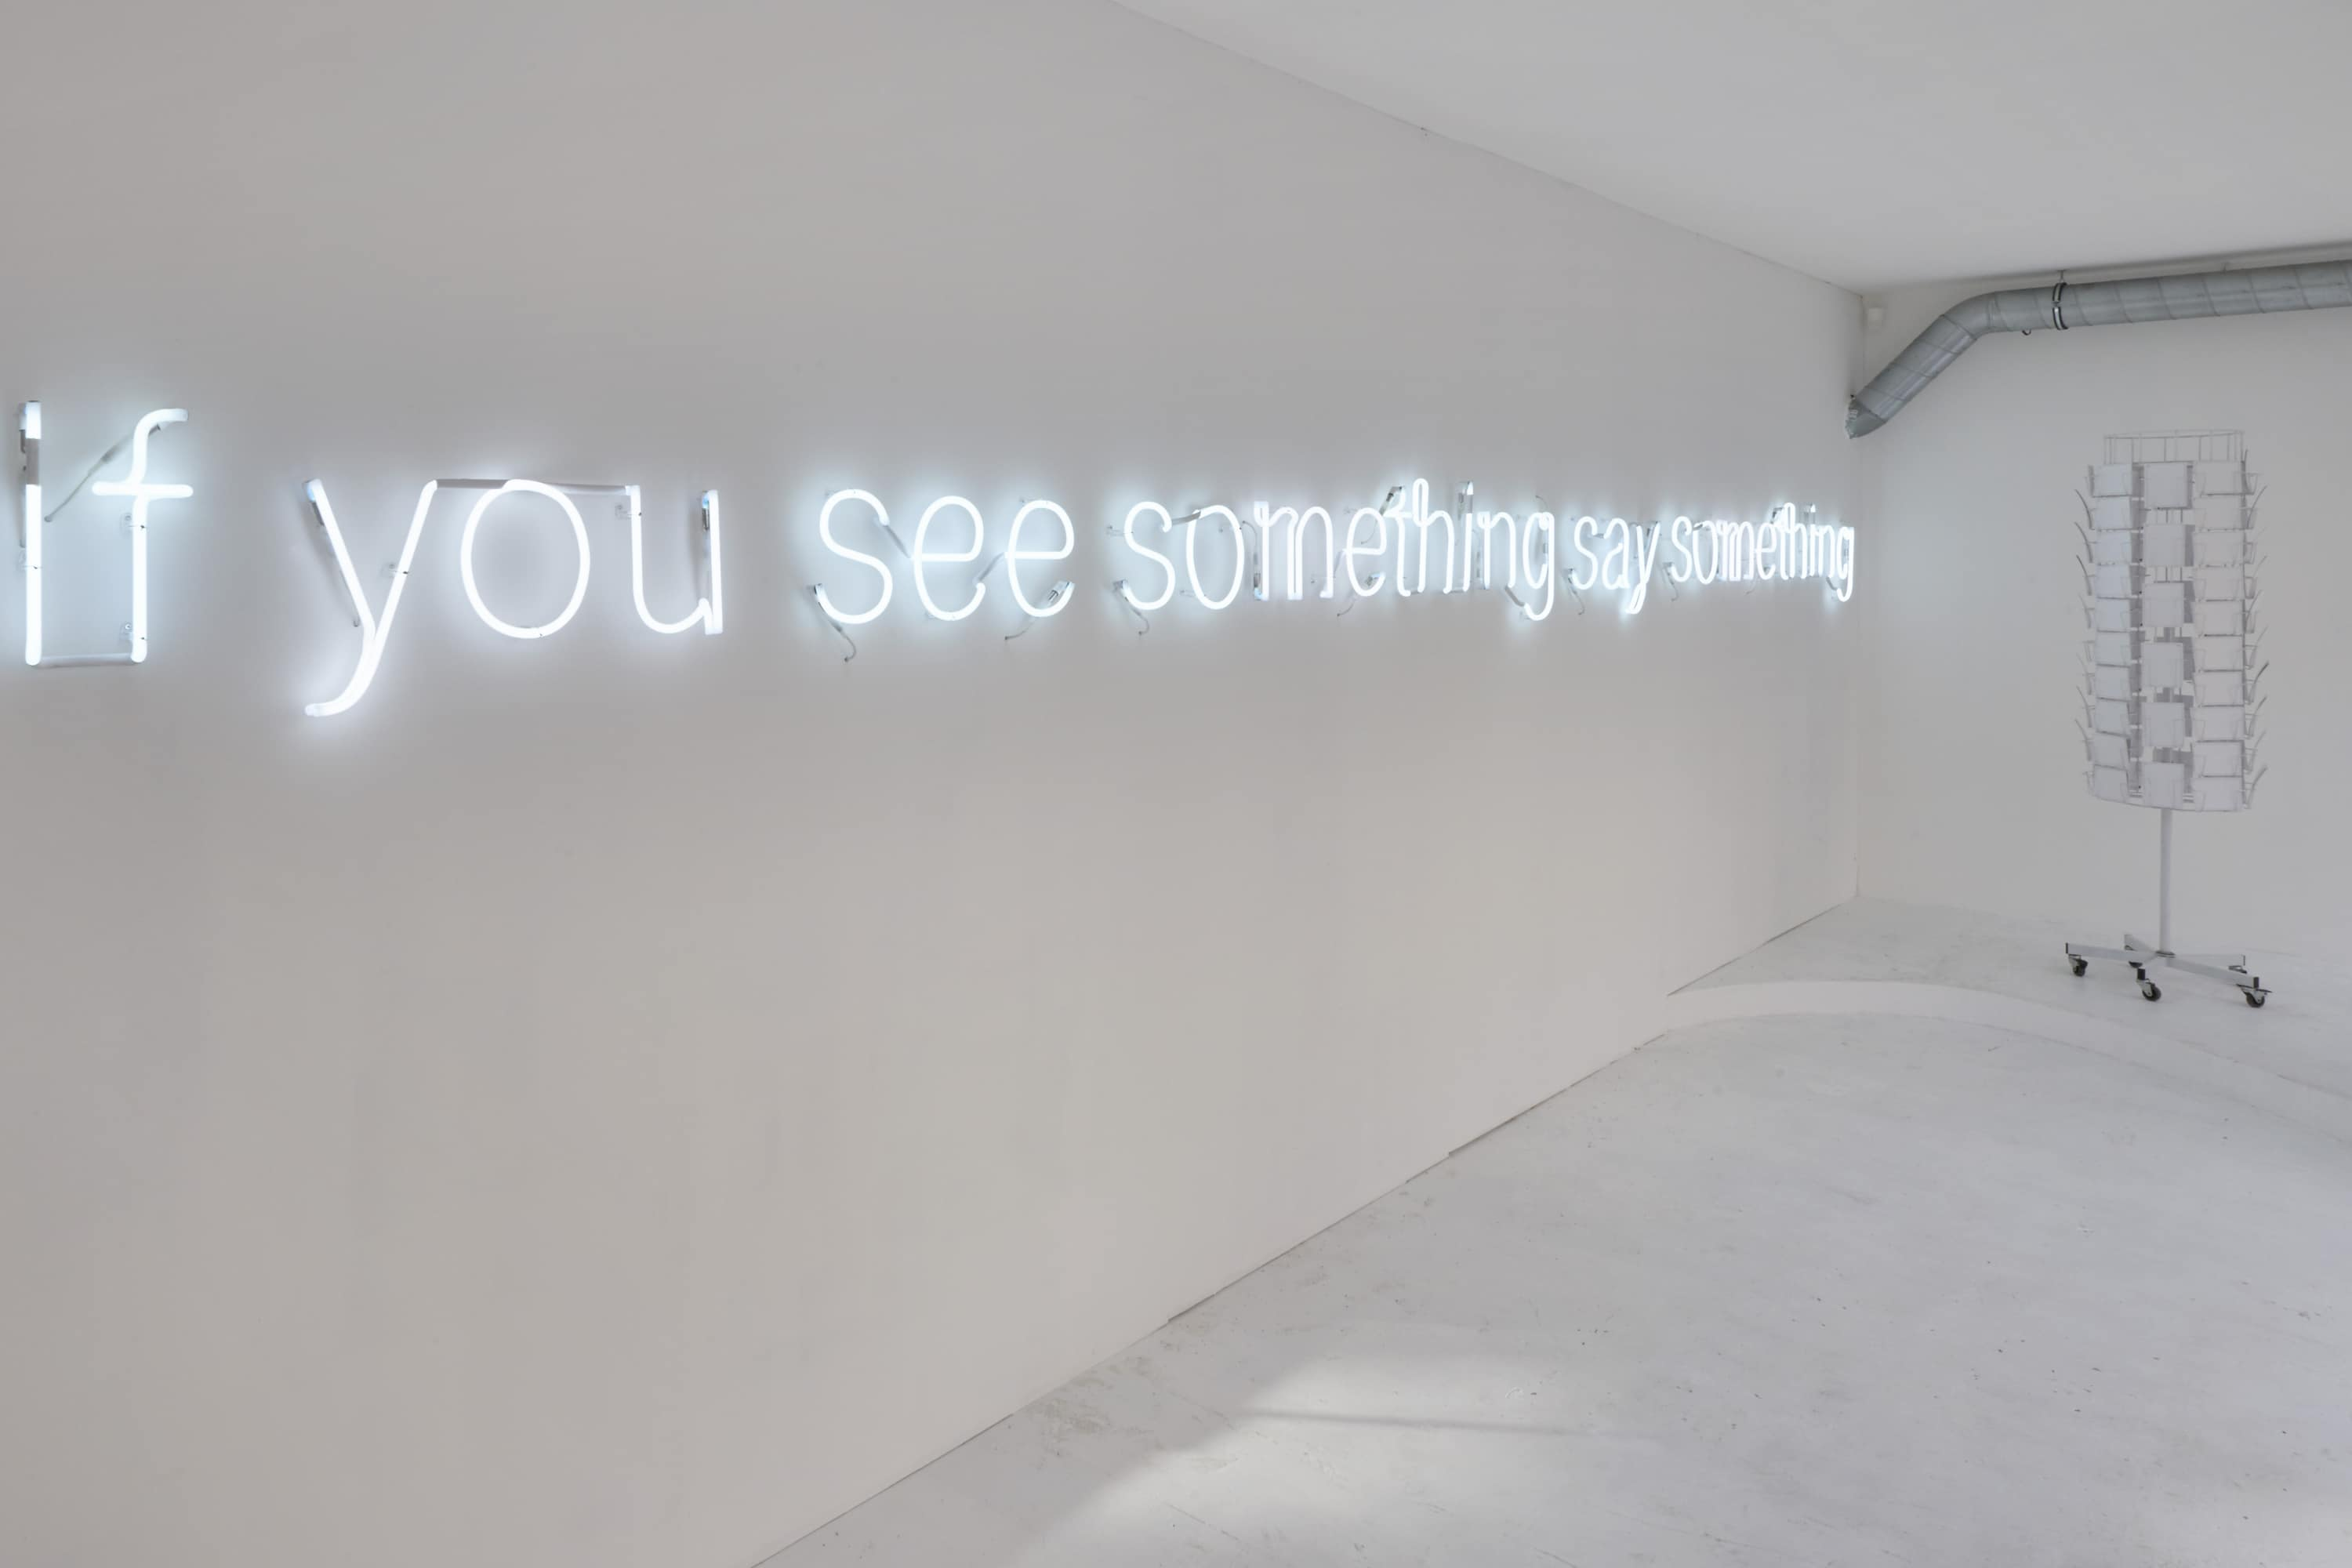 If you see something say something, 2015